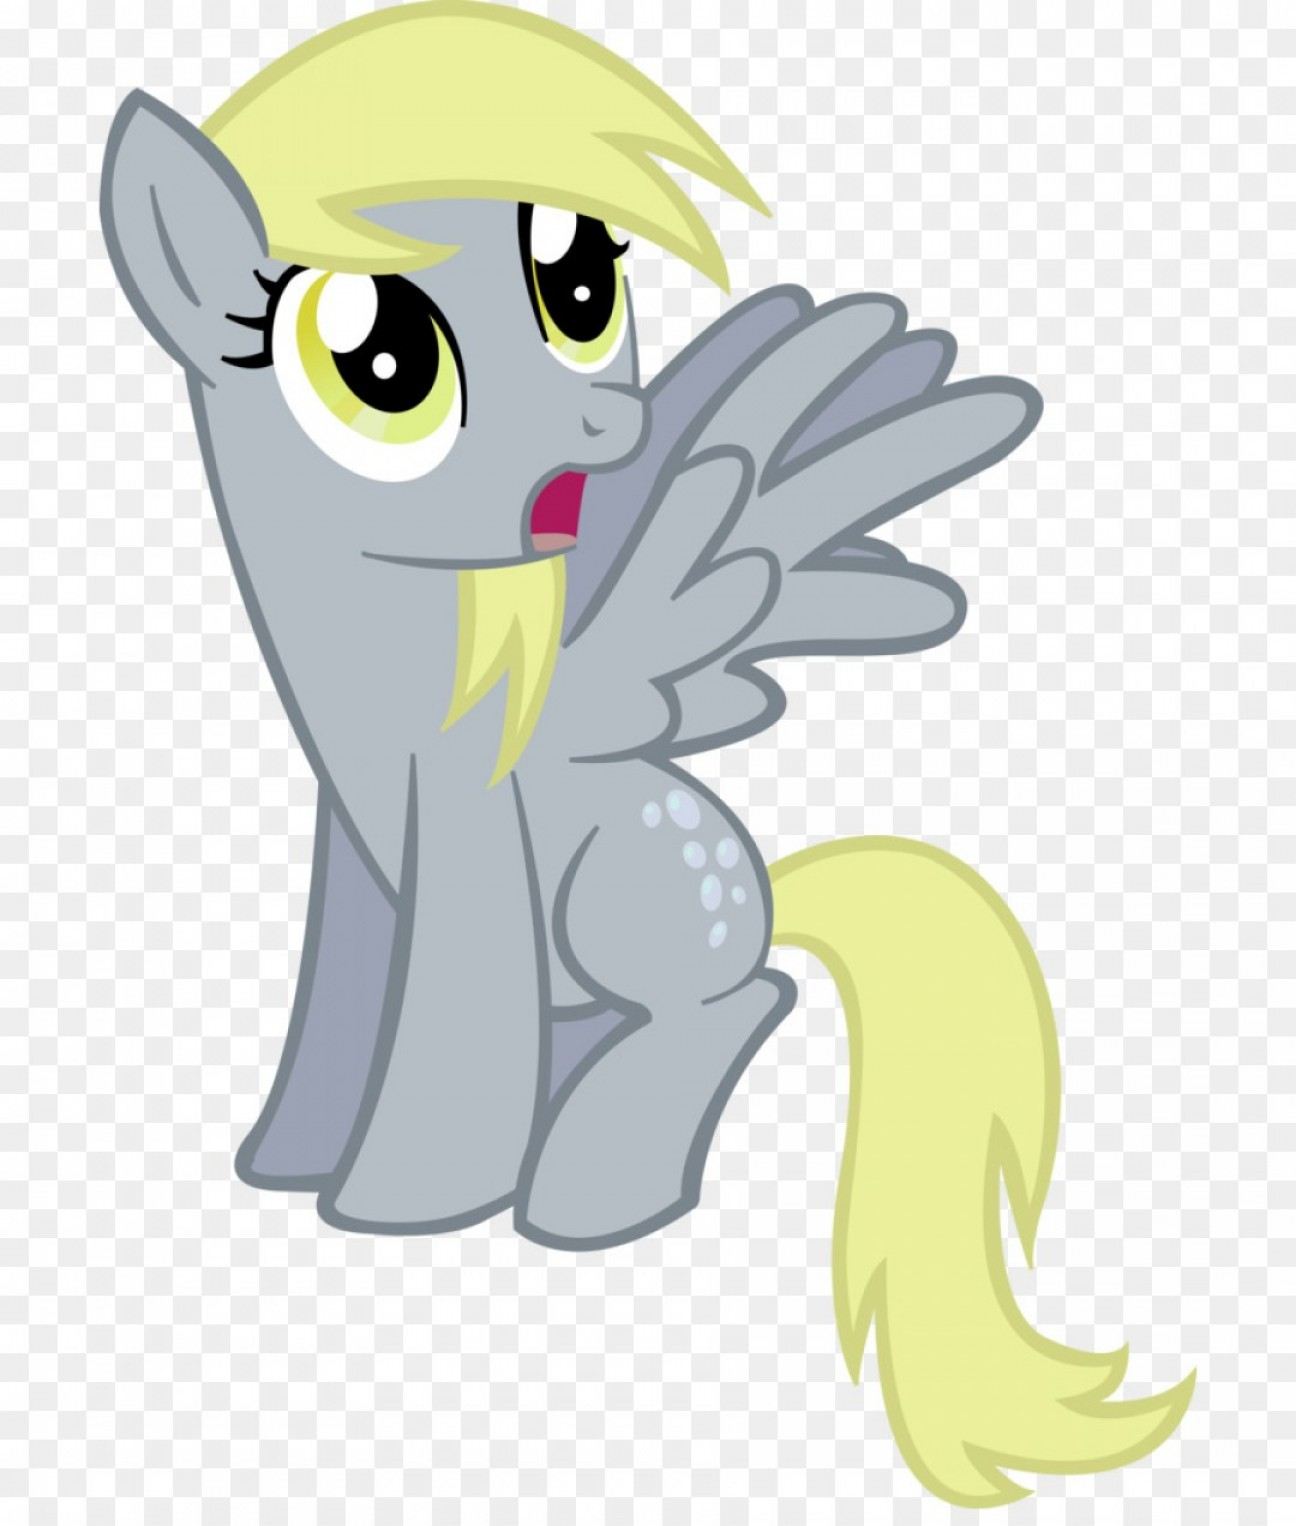 Derpy Hooves Vector: Png Derpy Hooves Pony Twilight Sparkle Rainbow Dash Hu